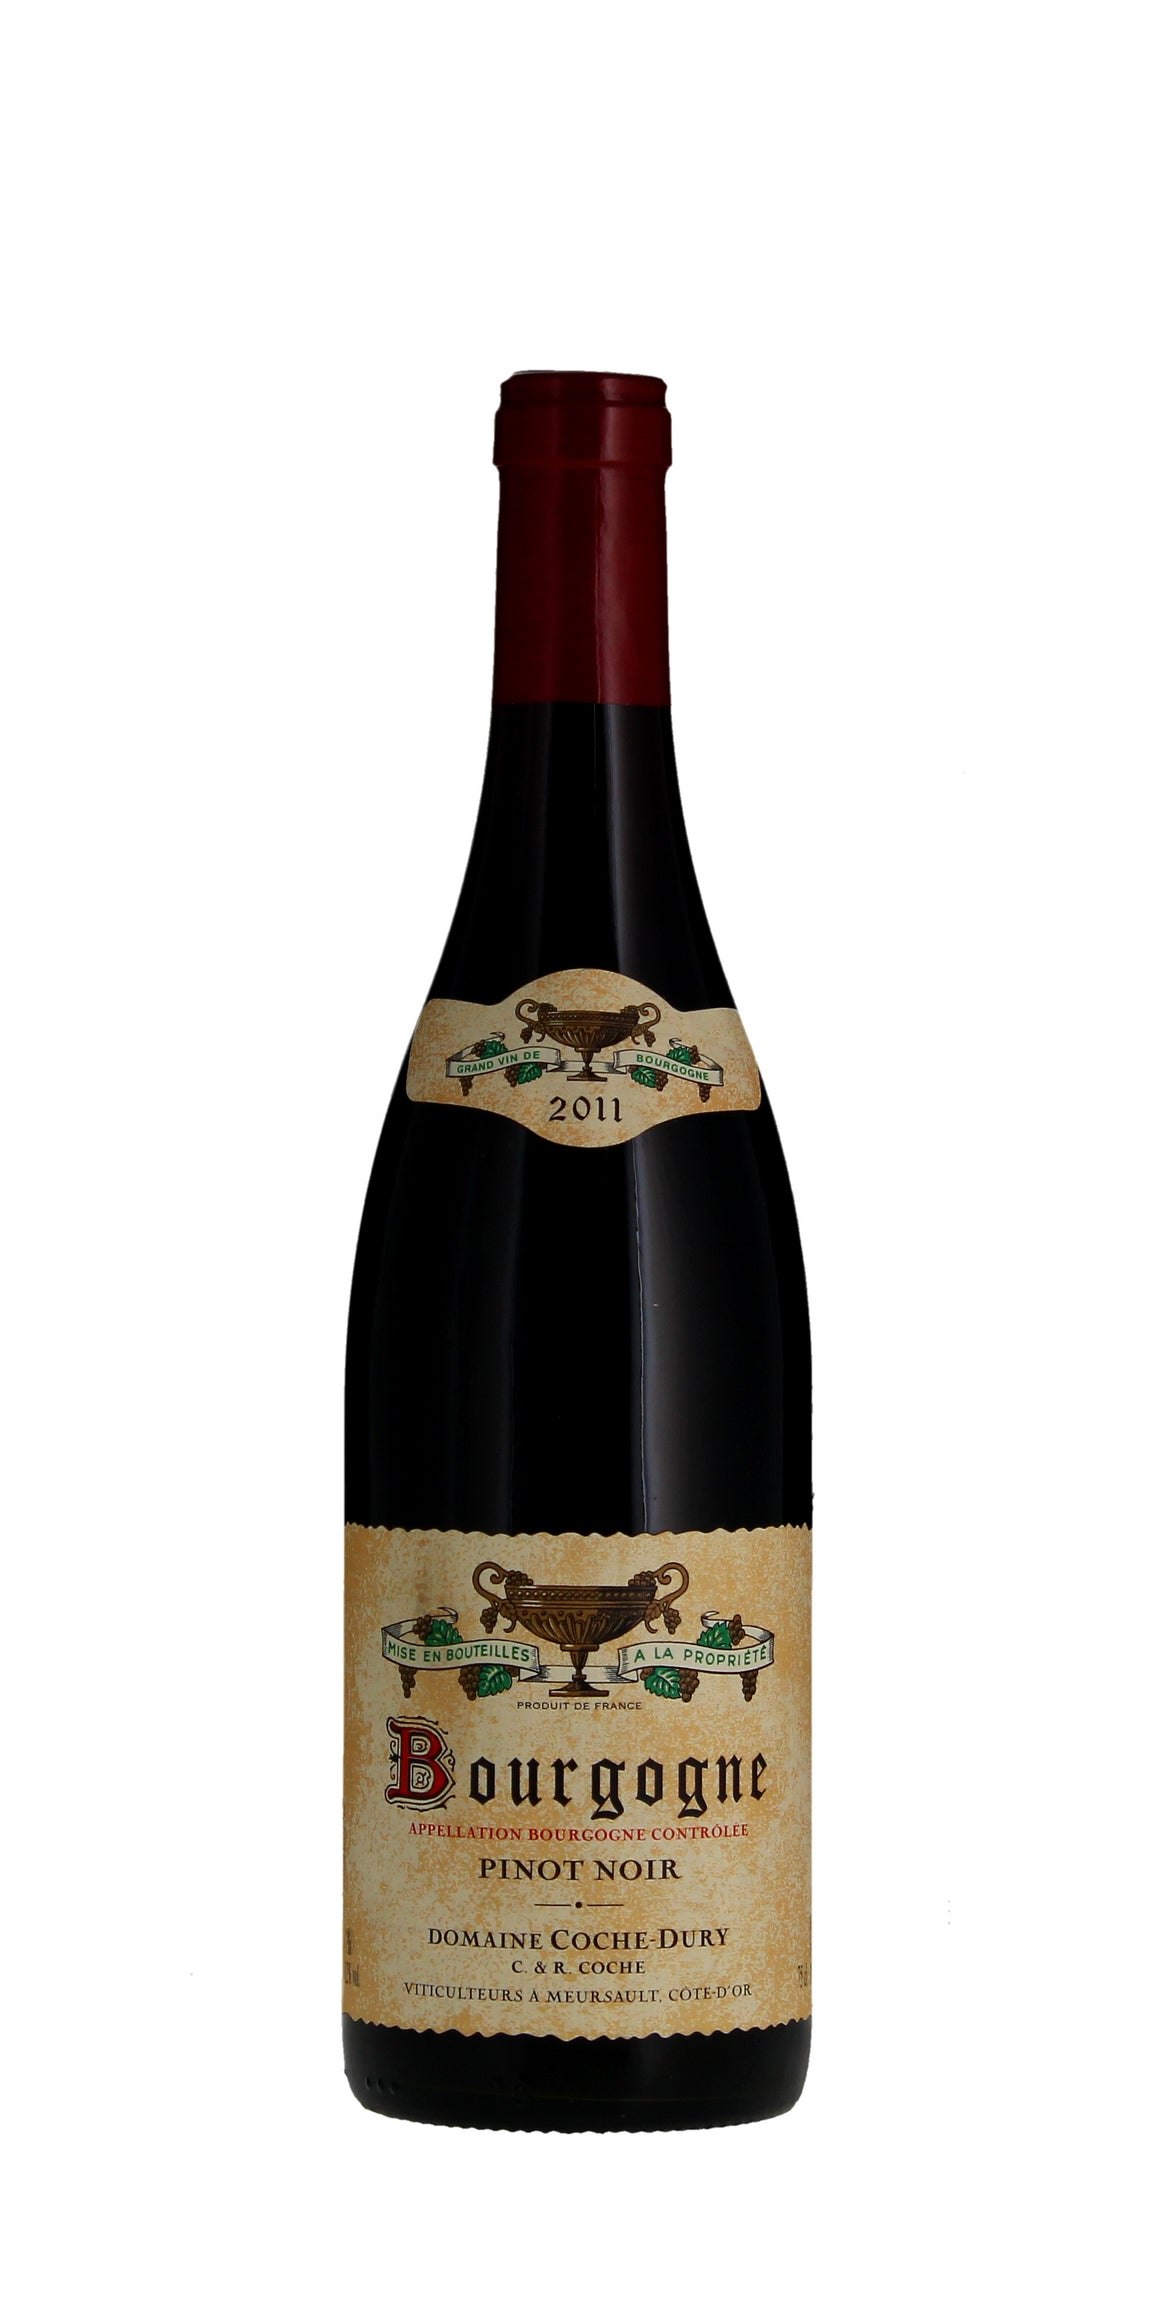 Coche Dury Bourgogne Rouge 2011